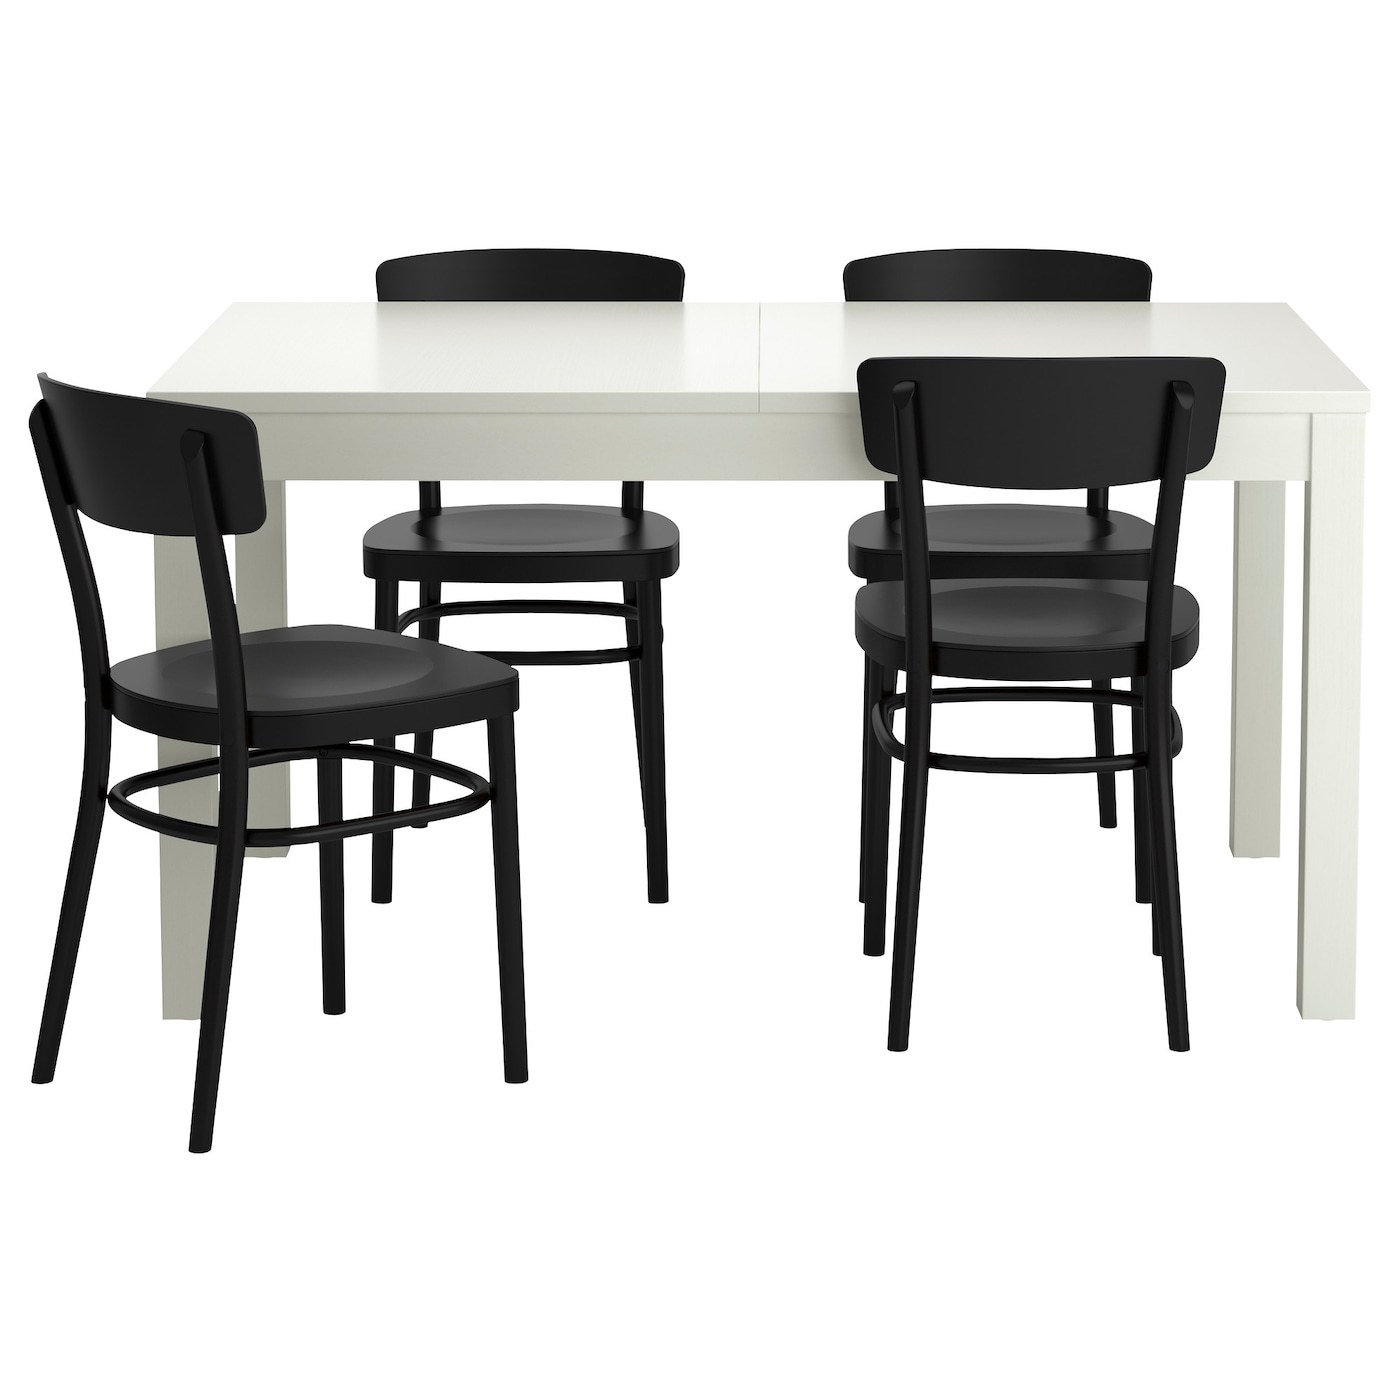 idolf bjursta table and 4 chairs white black 140 cm ikea. Black Bedroom Furniture Sets. Home Design Ideas